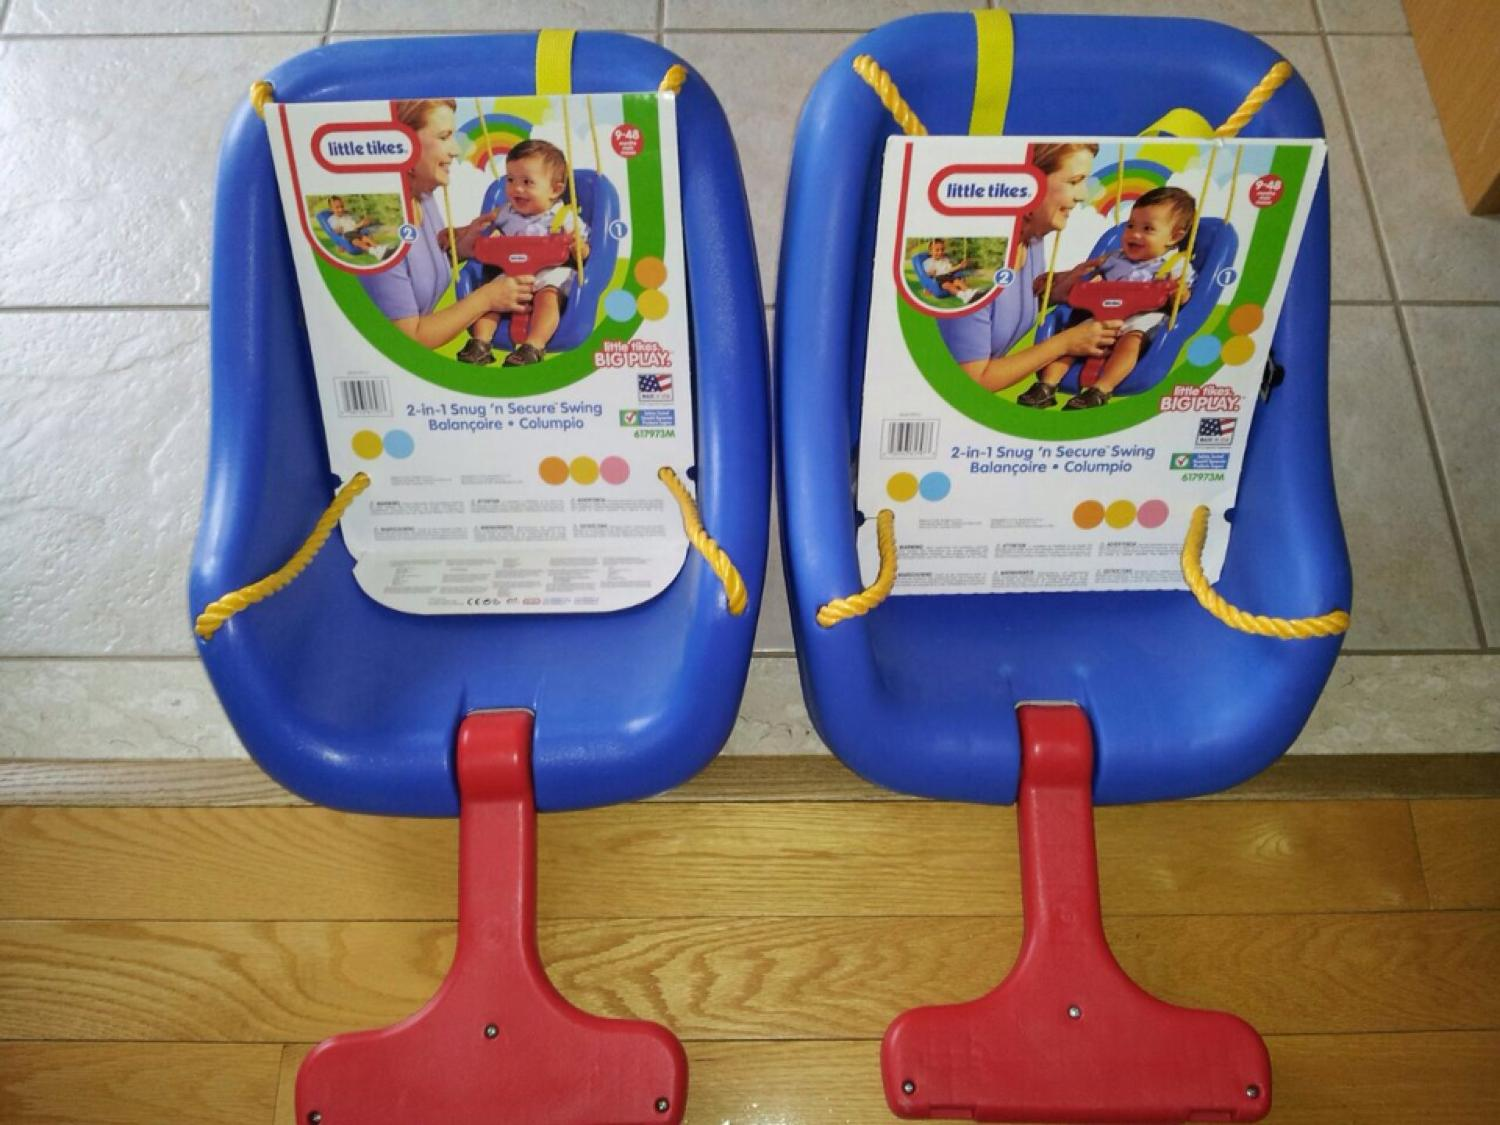 Only One Left Little Tikes 2 In 1 Snug N Secure Swing New With Packaging Blue For Kids 9 Months To 4 Years Old